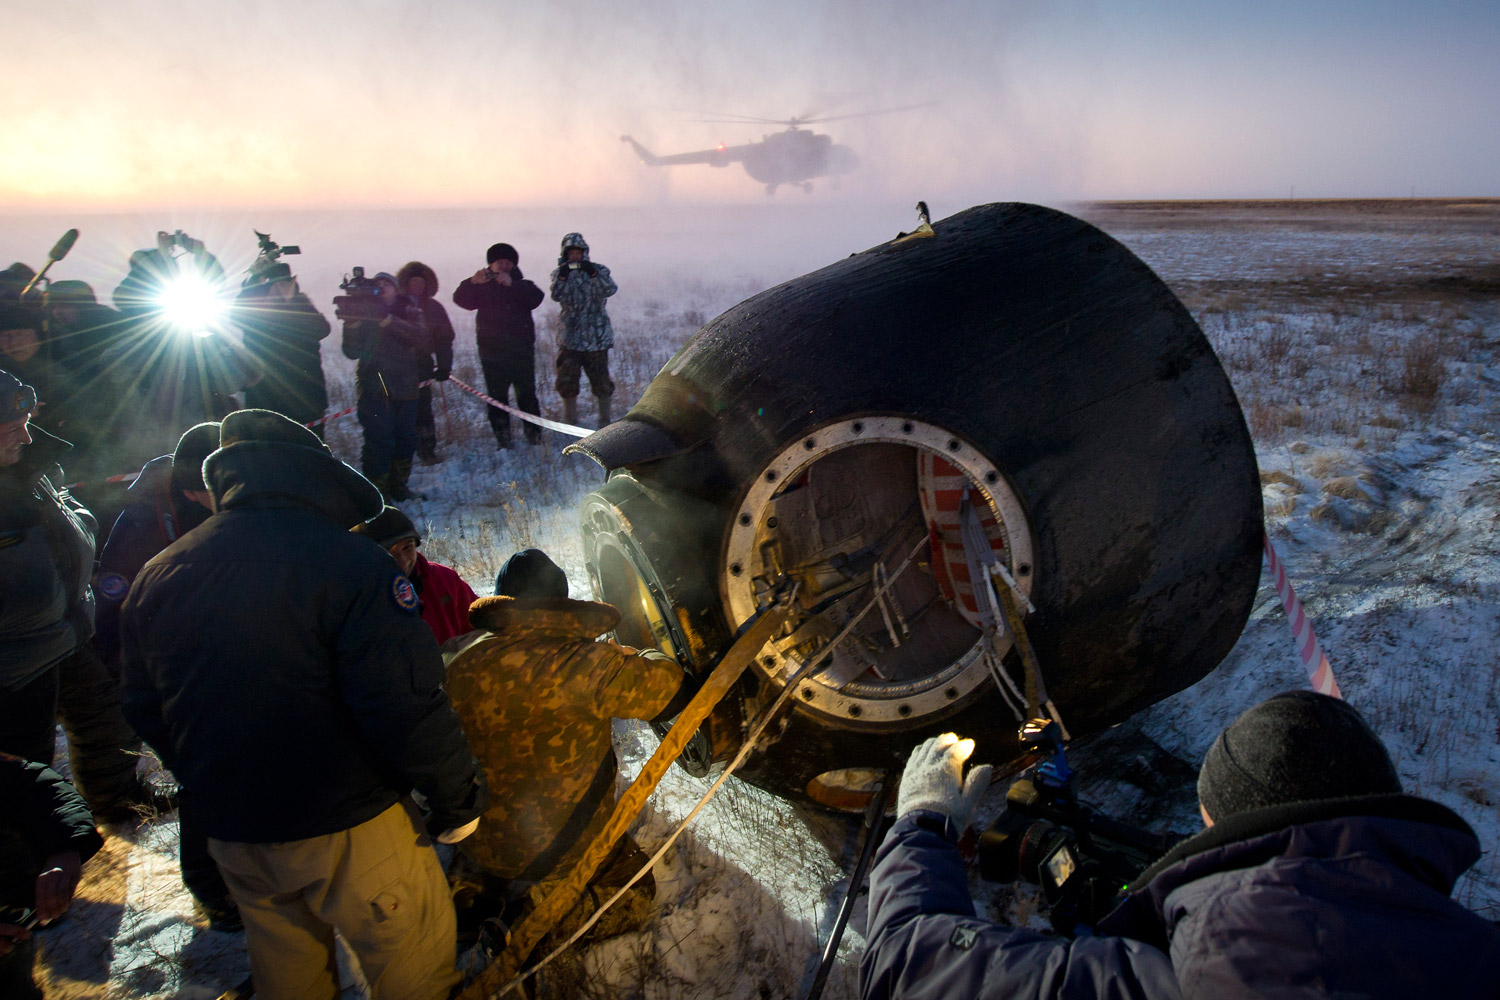 November 22, 2011. Russian support personnel work to get crew members out of the Soyuz TMA-02M re-entry module after the capsule landed in a remote area of Kazakhstan. The crew was returning from more than five months aboard the International Space Station.